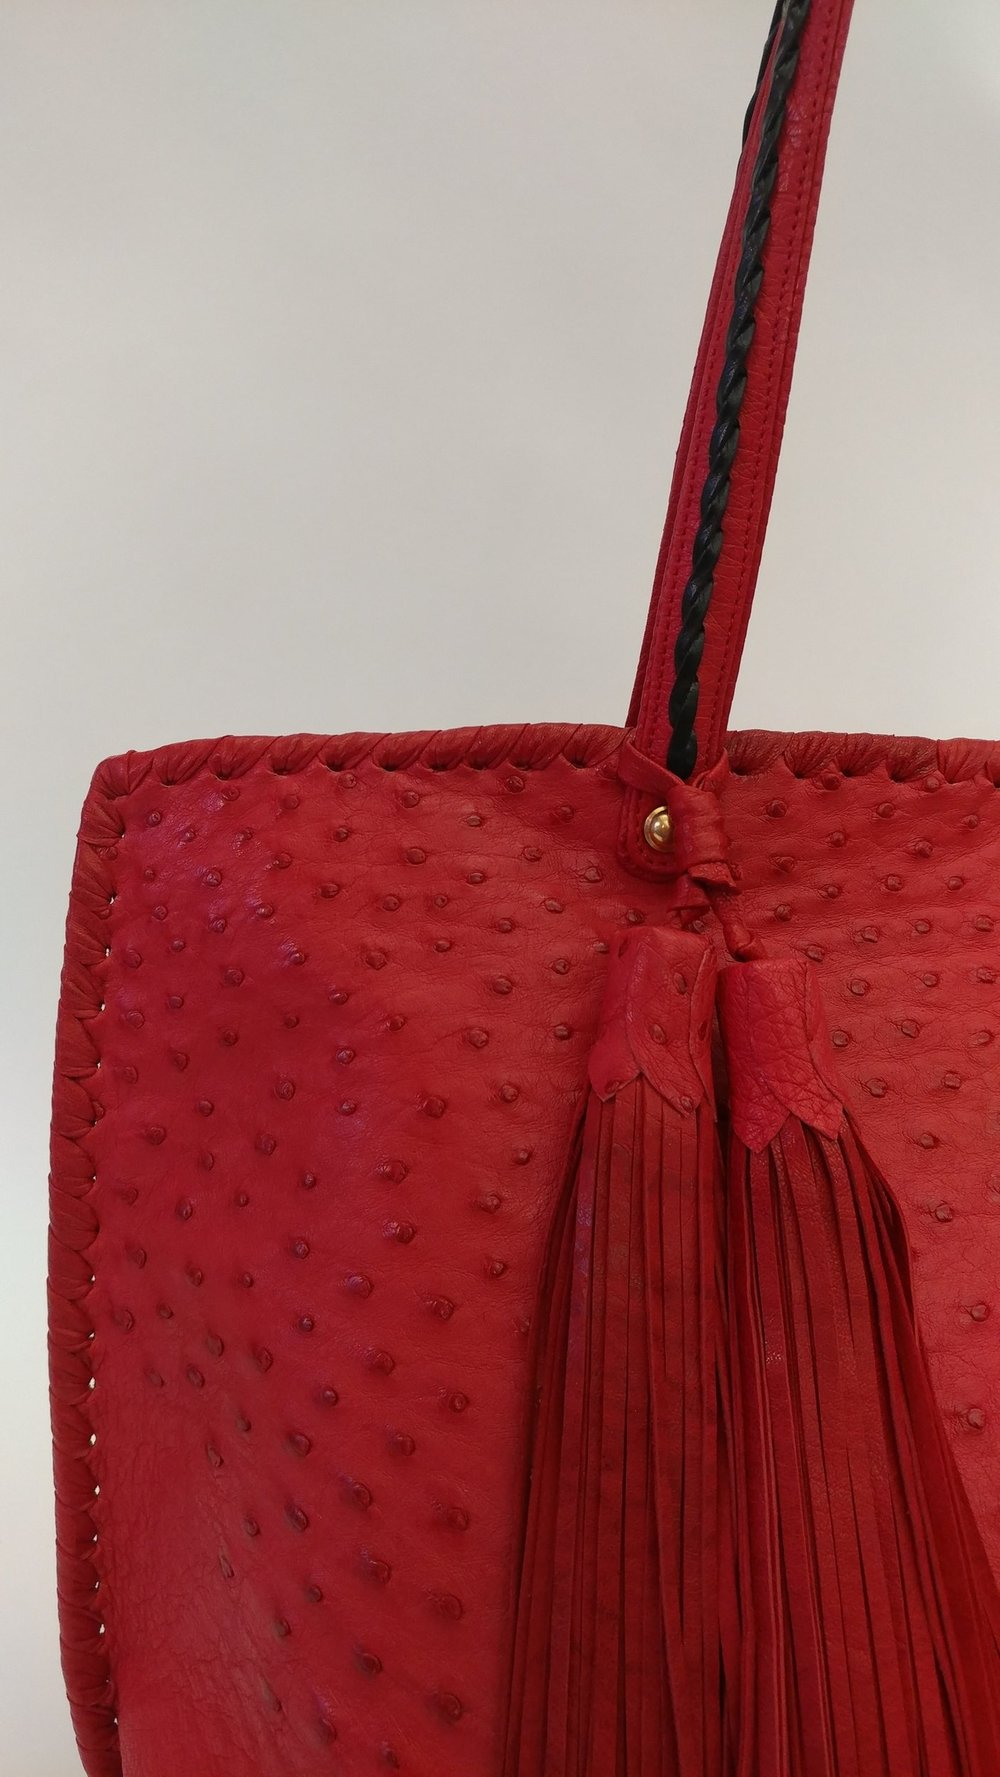 Custom red ostrich bag to match Carol H.'s car!